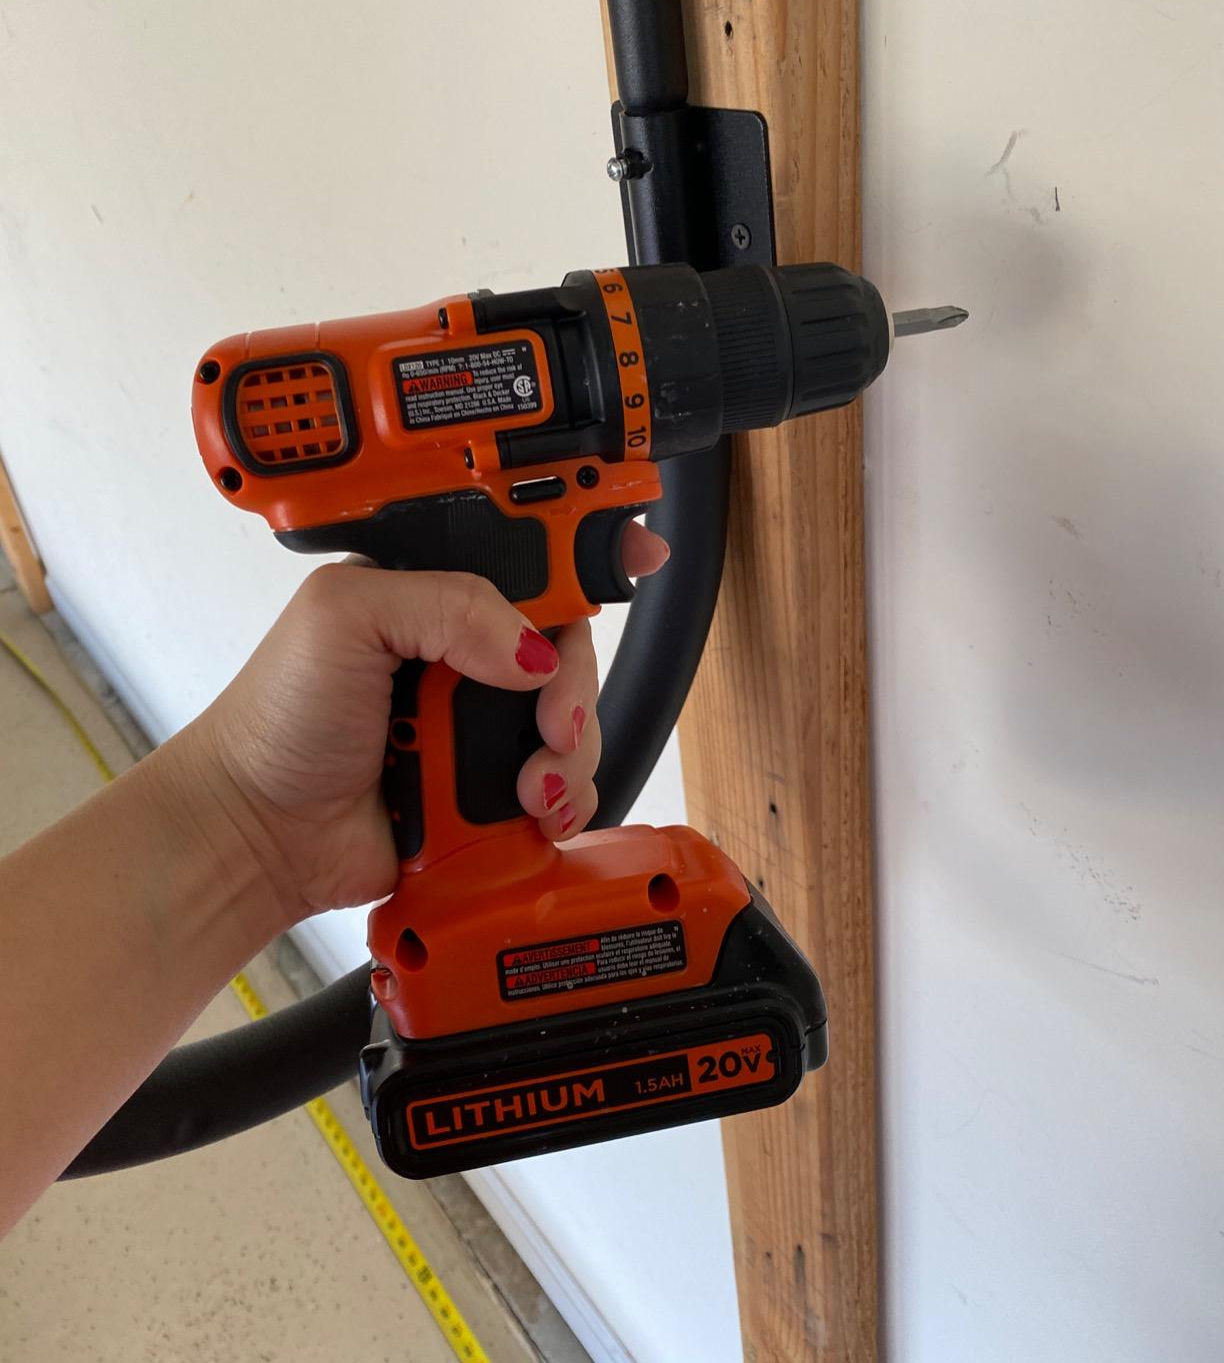 reviewer's hand holding the drill